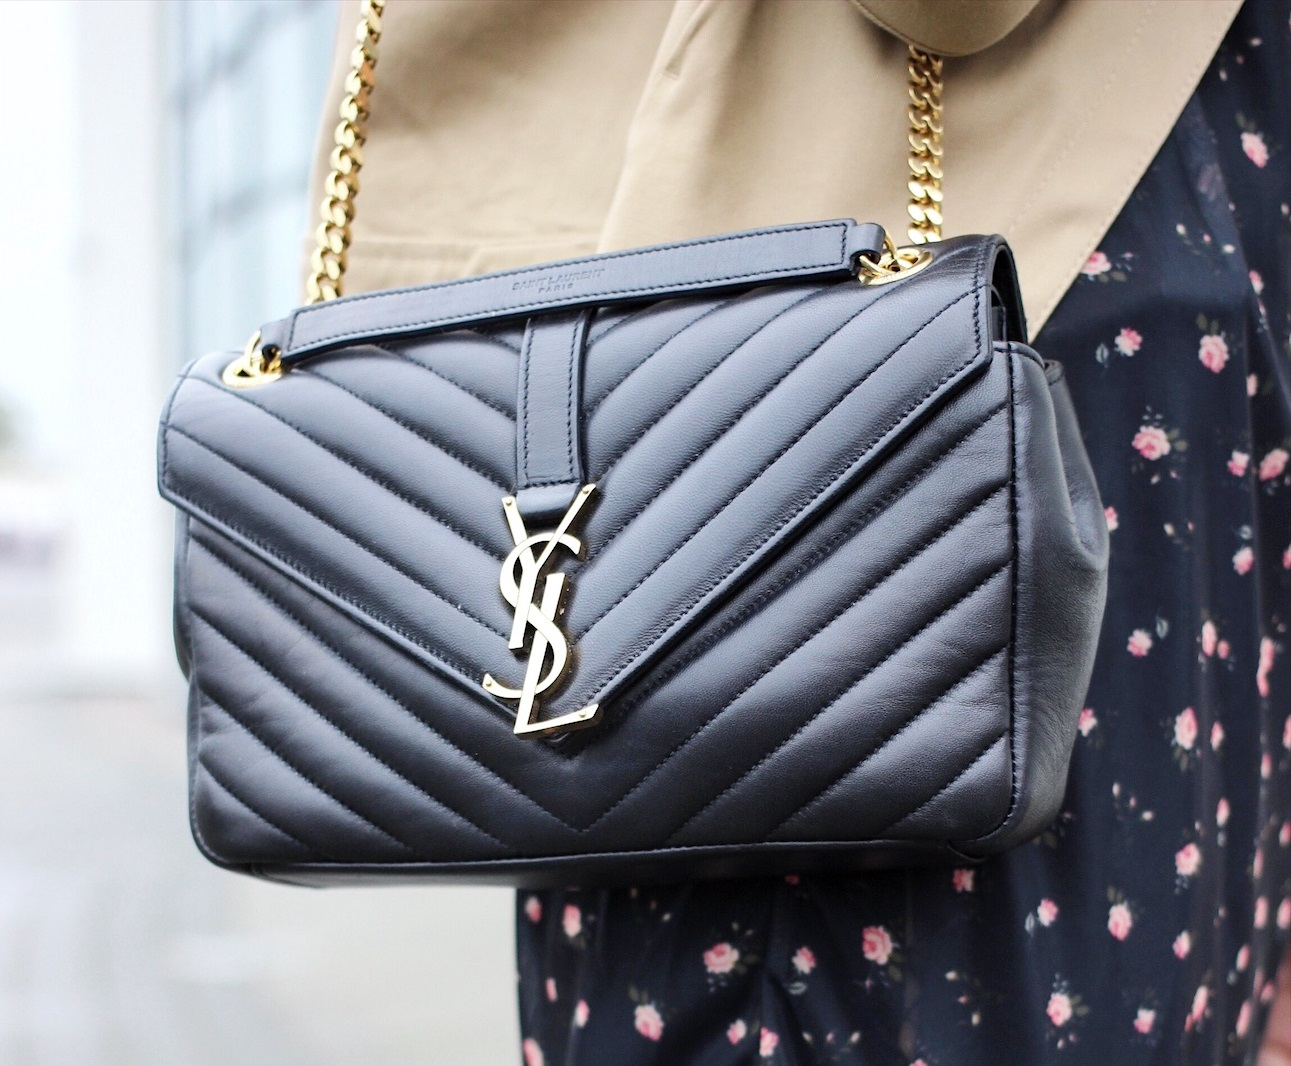 Saint-Laurent-Monogram-bag-street-style